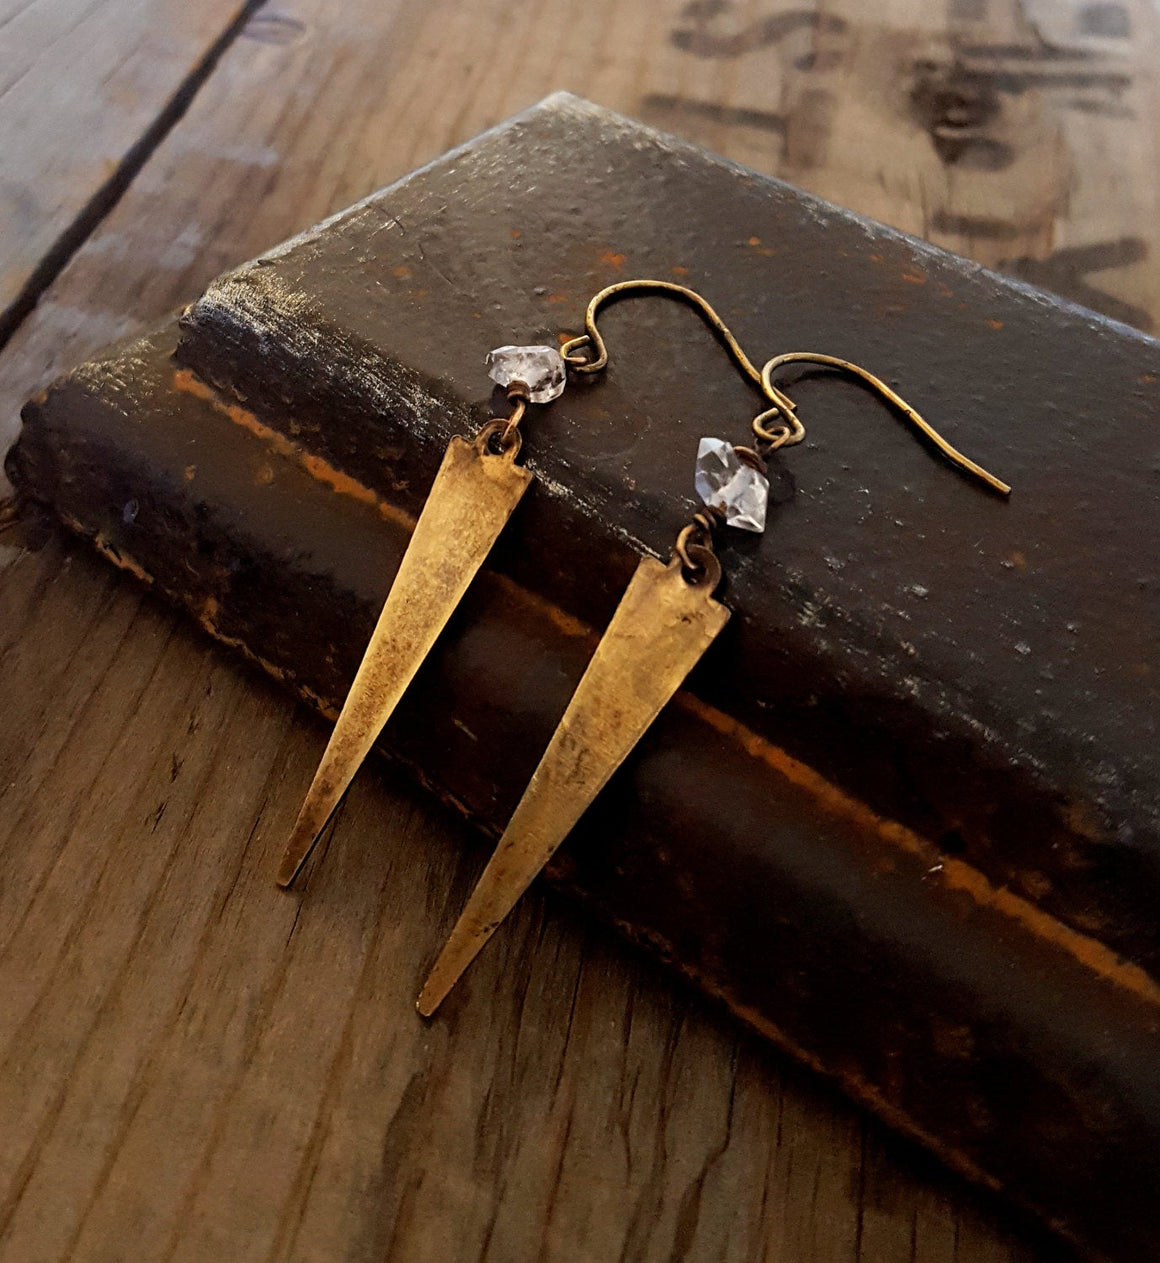 Herkimer Diamond Brass Spike Earrings, Rustic Chic Earrings, Raw Stone Quartz Crystal, Arrowhead Gold Spike, Antique Gold, Rustic Jewelry - ViaLove Designs